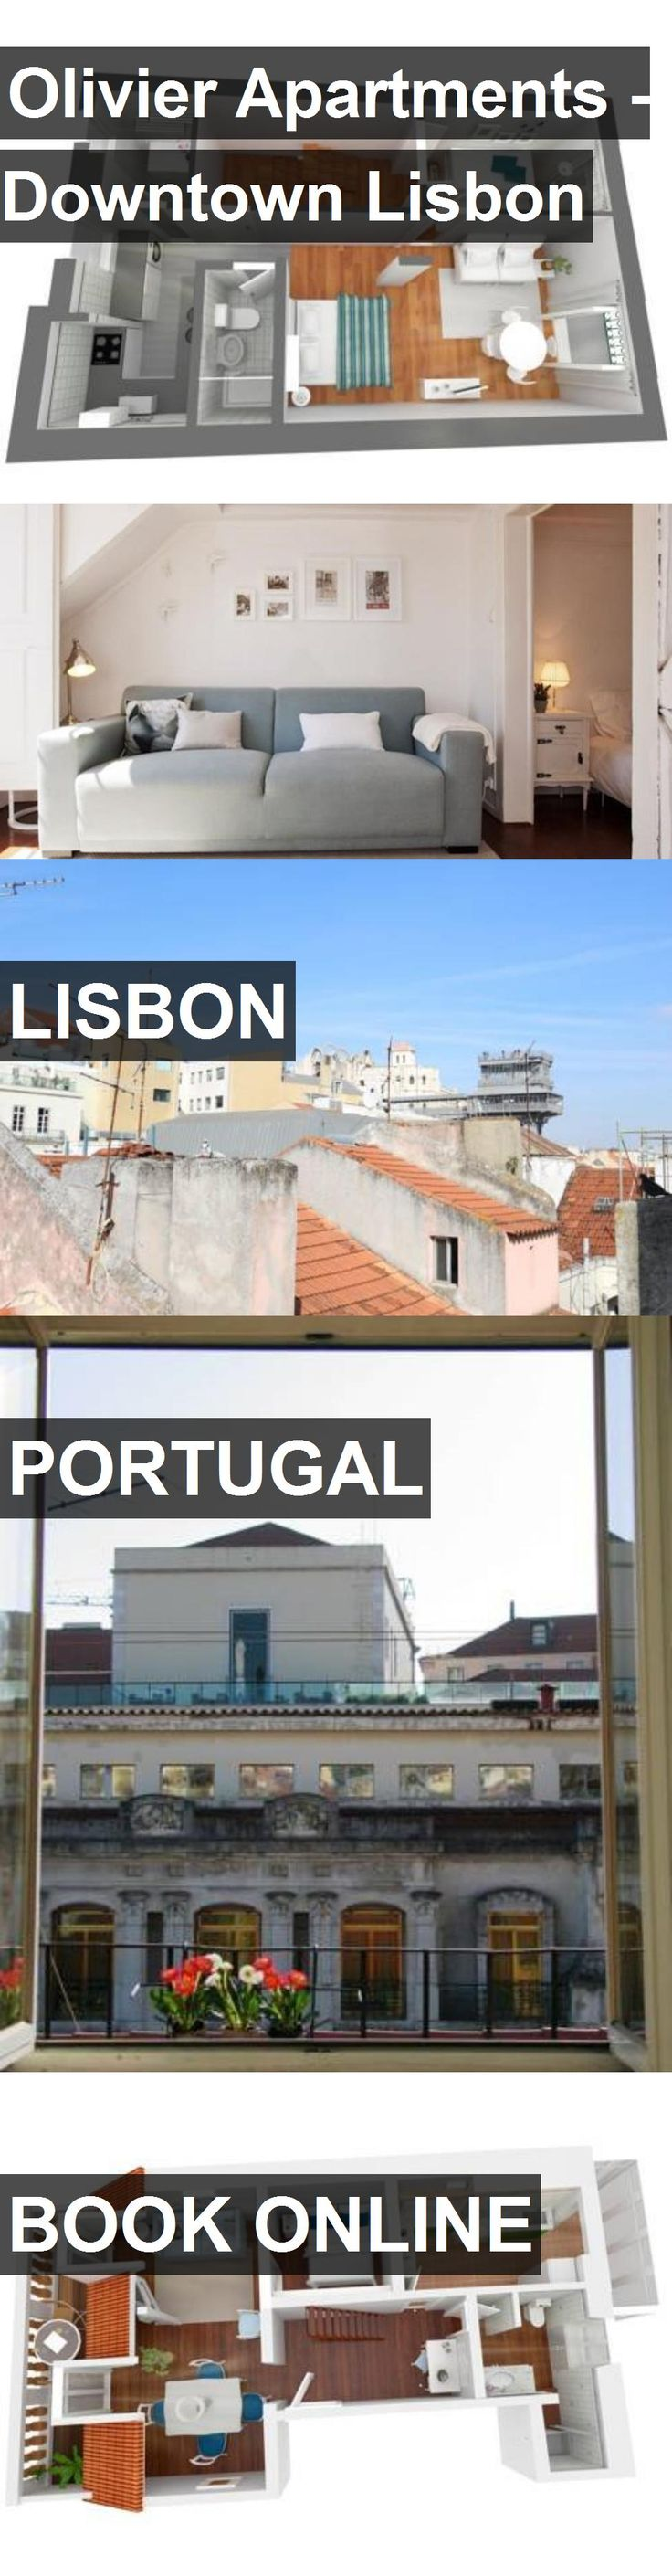 Olivier Apartments - Downtown Lisbon in Lisbon, Portugal. For more information, photos, reviews and best prices please follow the link. #Portugal #Lisbon #travel #vacation #apartment